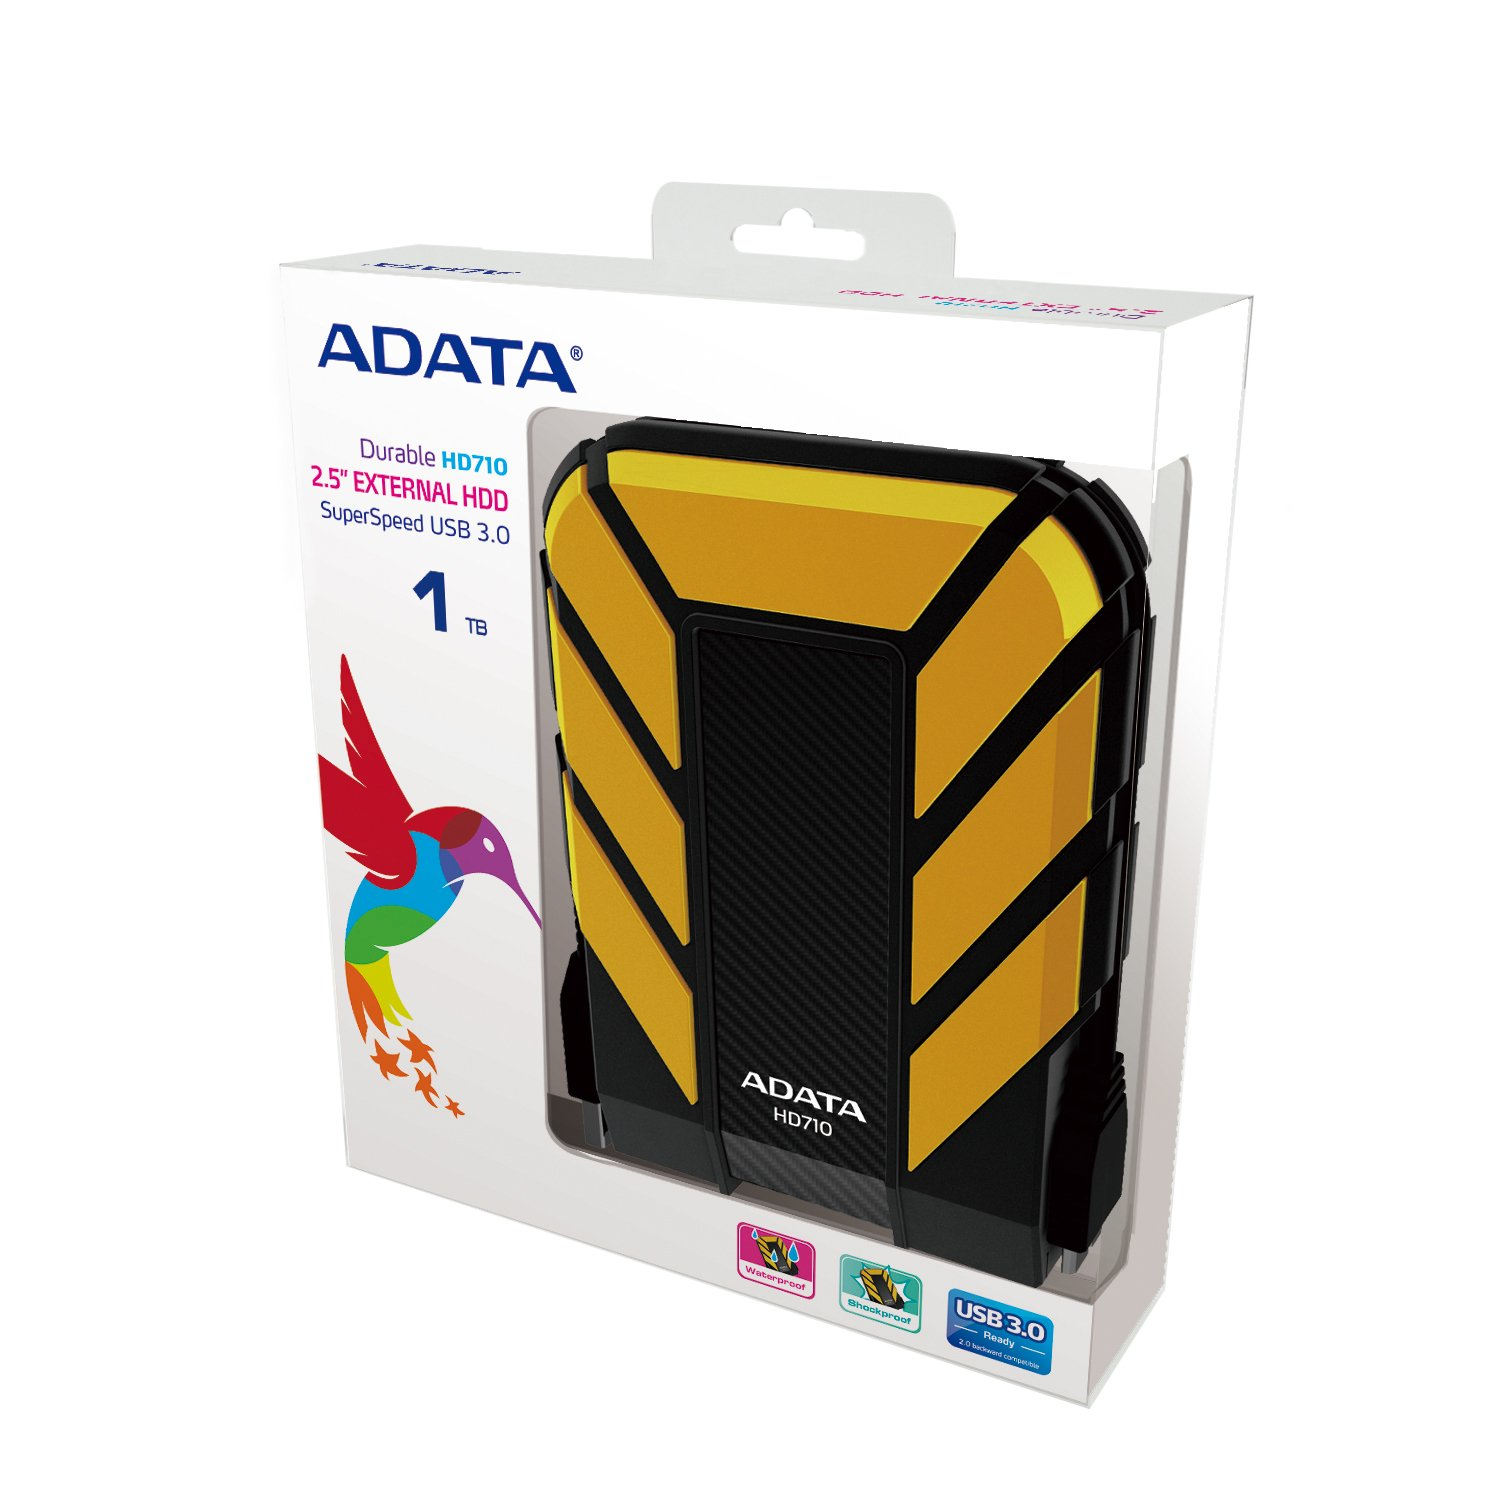 ADATA HD710 1TB USB 3.0 Waterproof/Dustproof/ Shock-Resistant External Hard Drive, Yellow (AHD710-1TU3-CYL) by ADATA